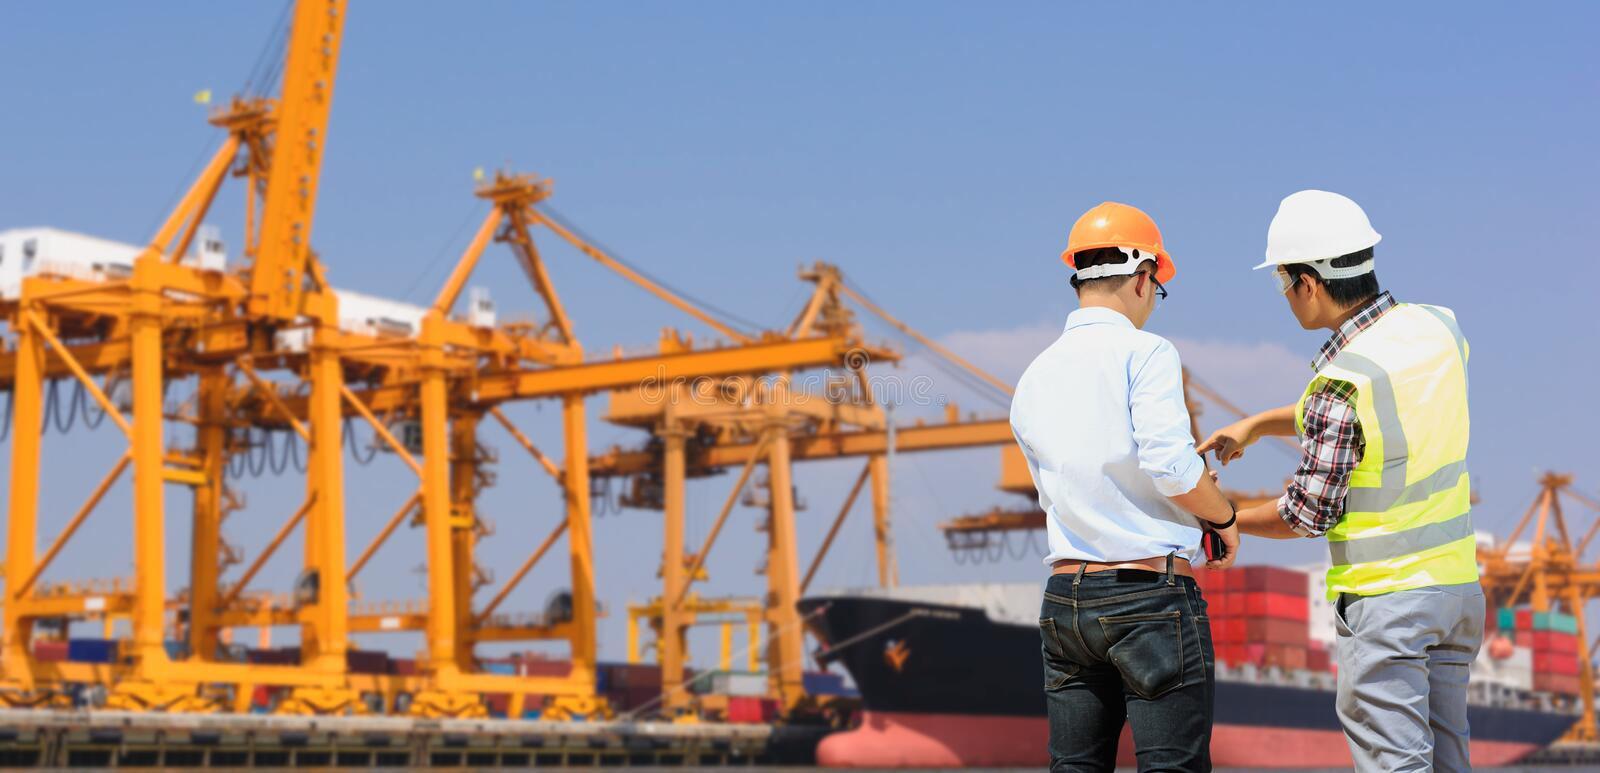 Crane inspection engineers royalty free stock photo